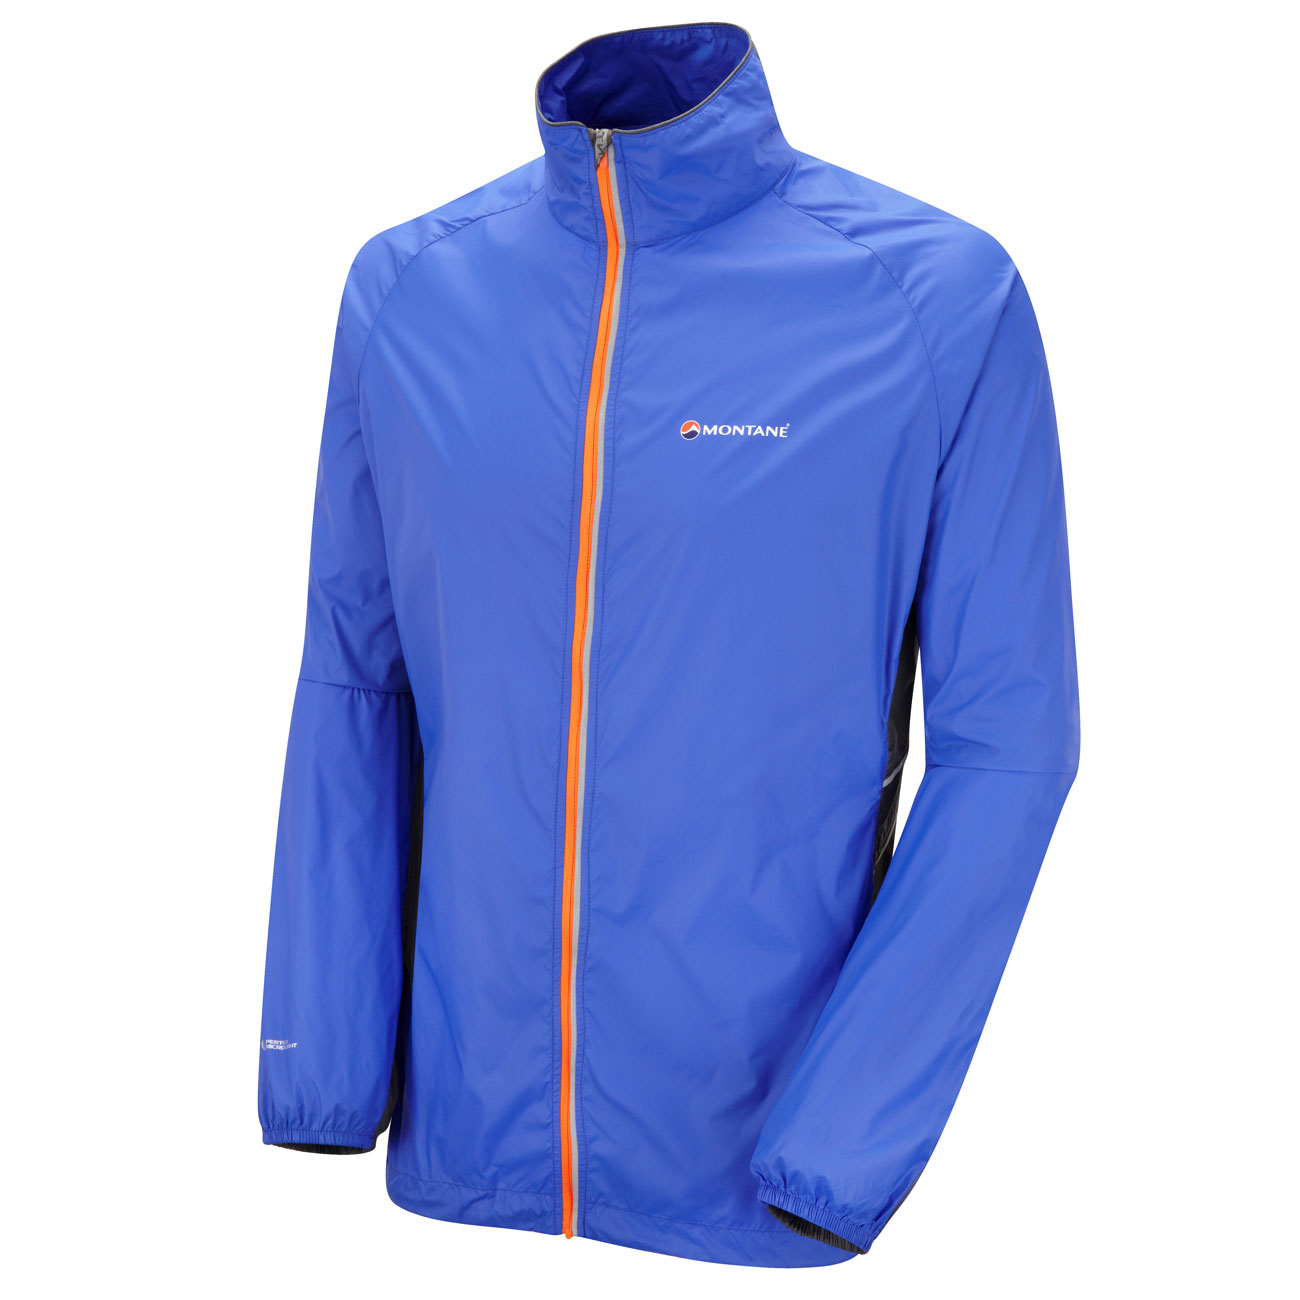 Featherlite Marathon Jacket